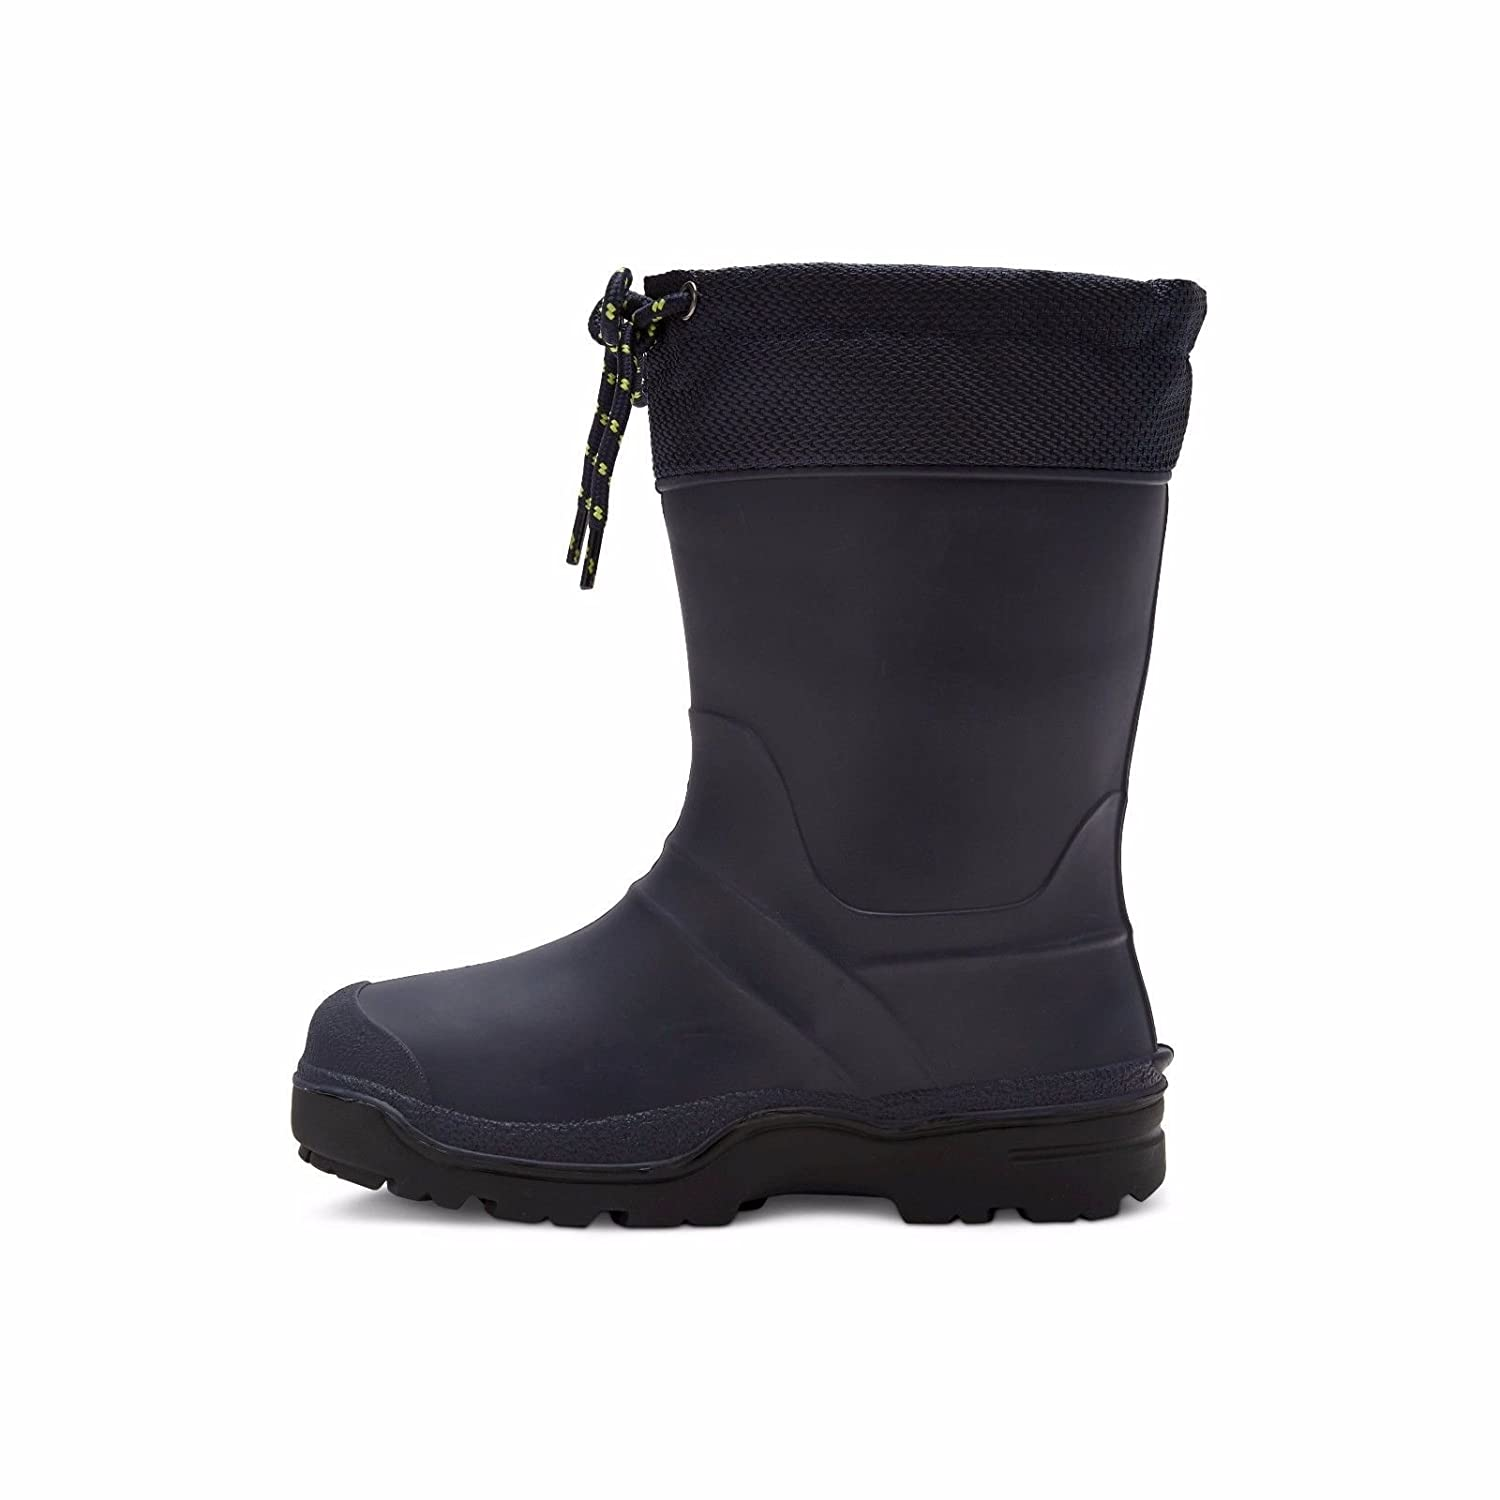 Snowmaster Icestorm Winter Boots Boys and Girls 25 Degree Fahrenheit Waterproof Boots